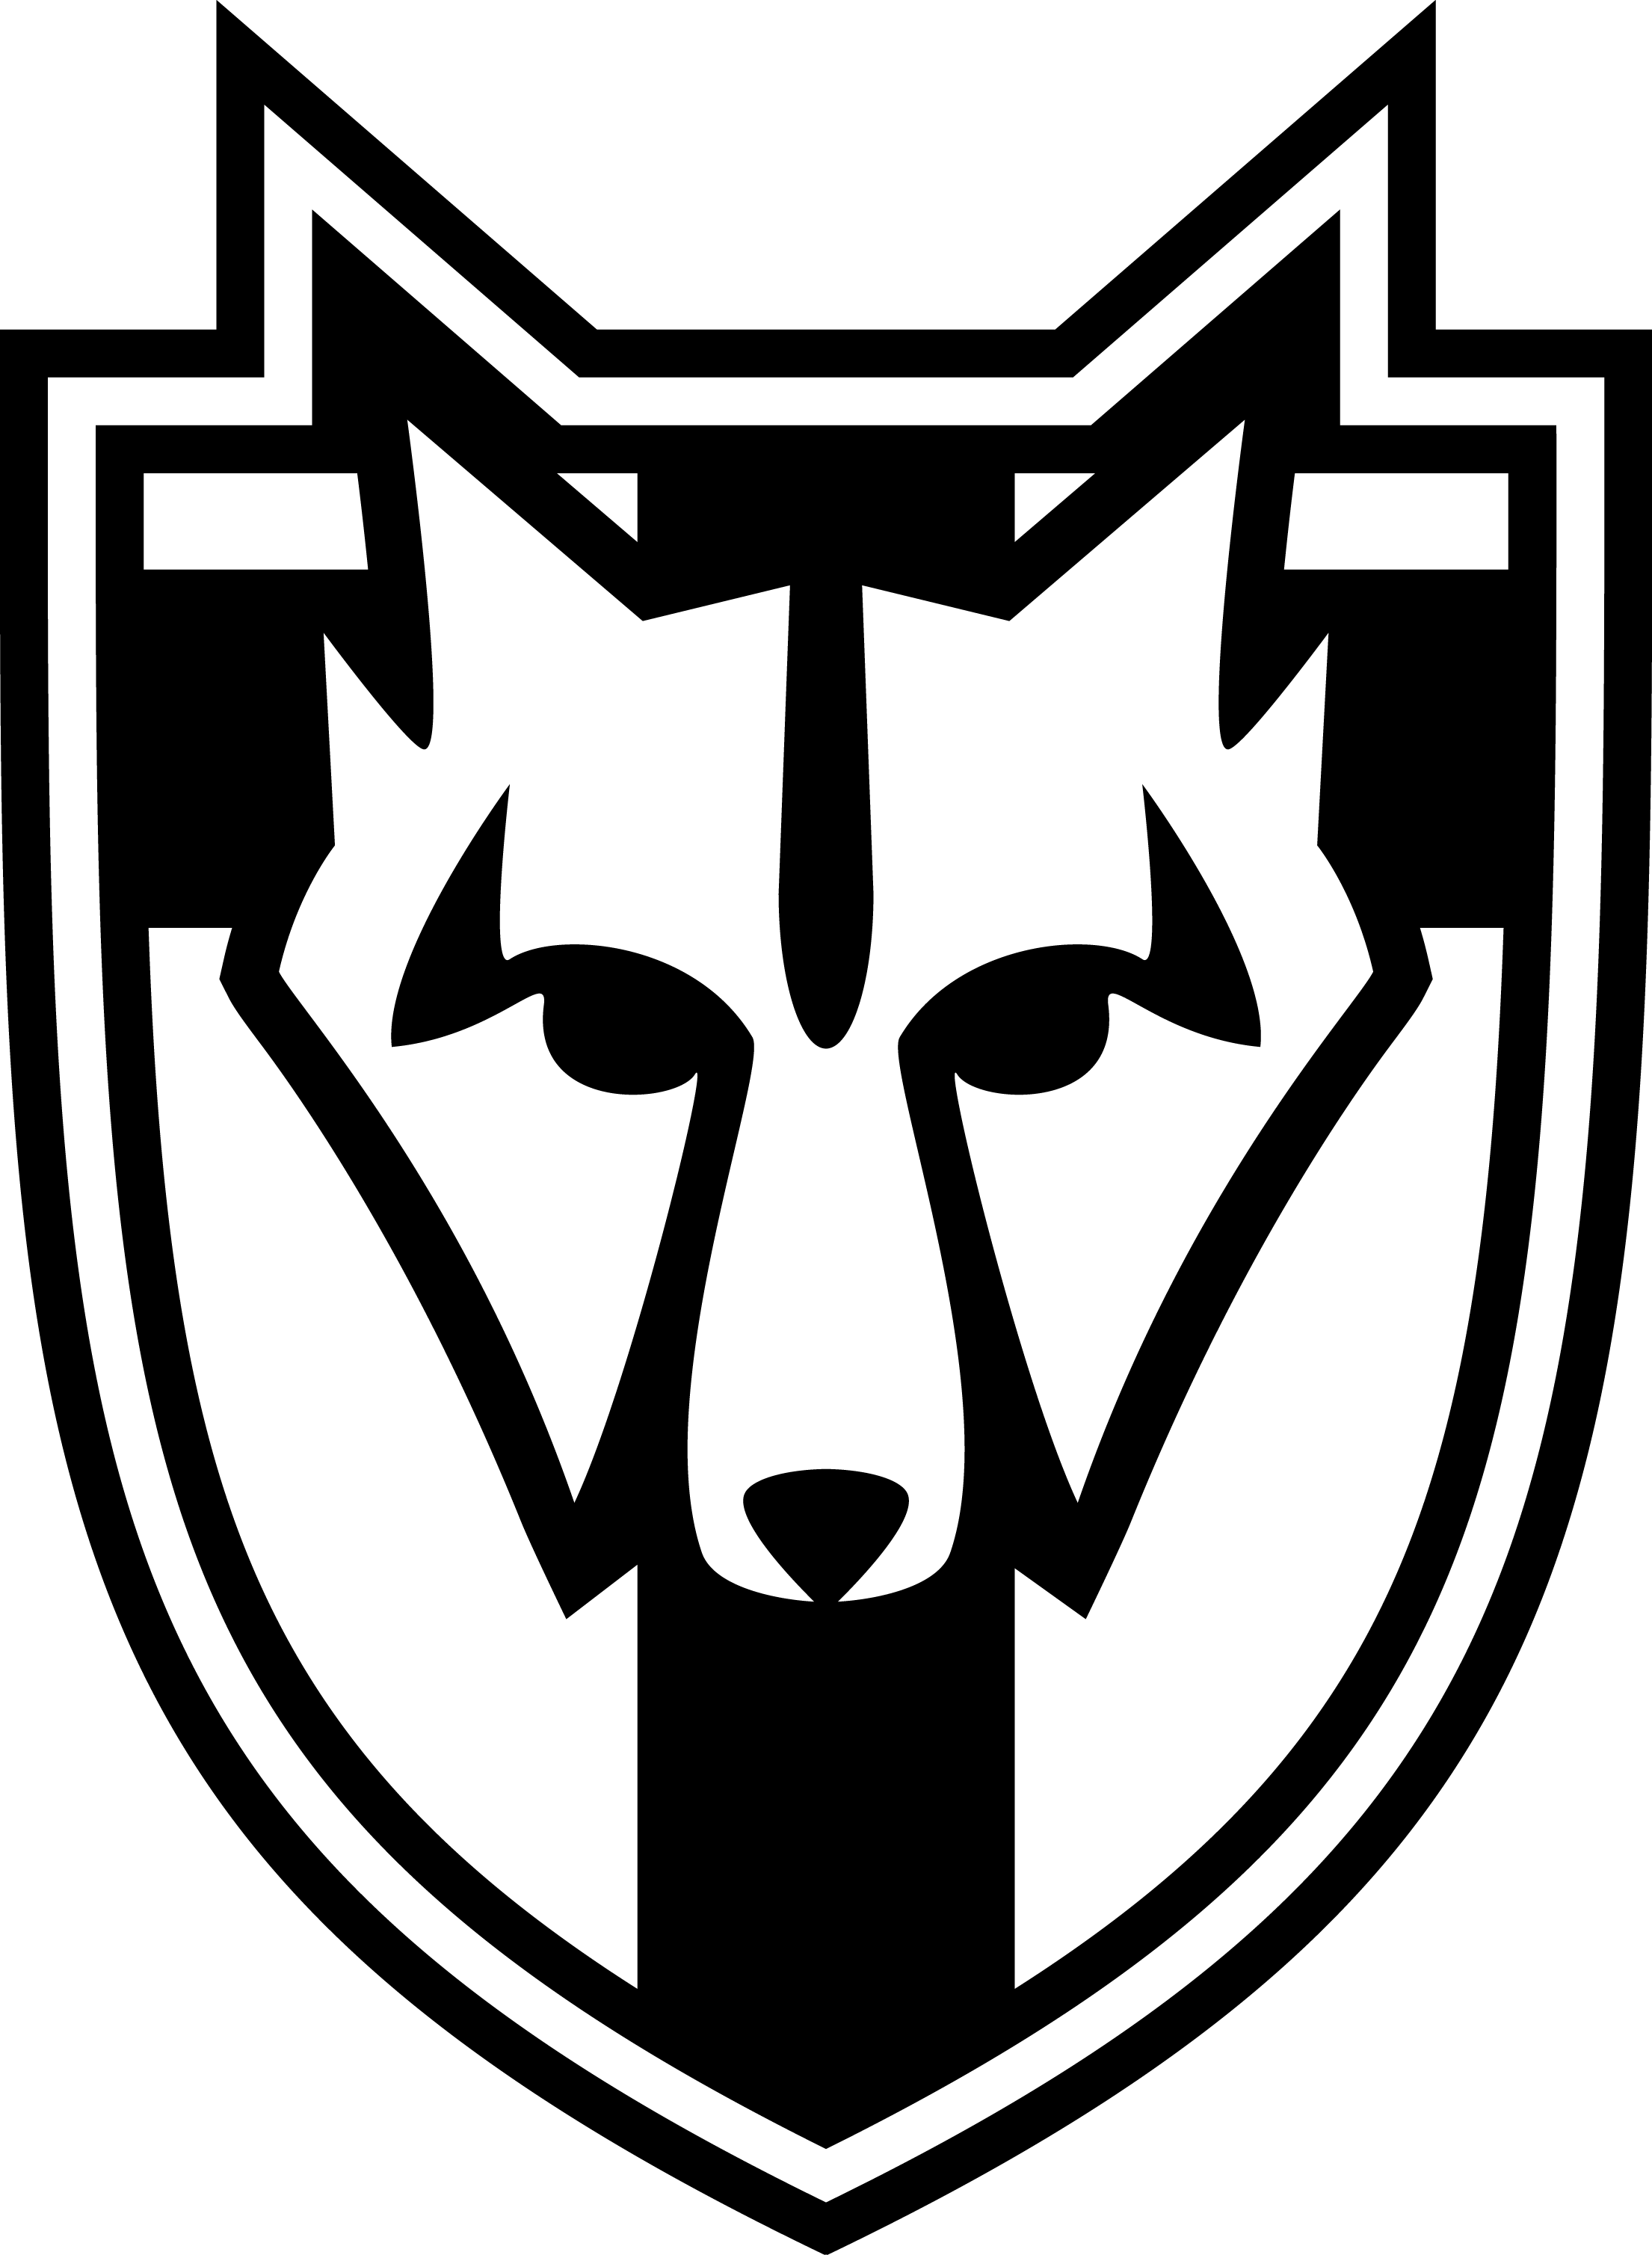 graphic black and white download The Elder Scrolls V Skyrim Solitude Symbol by Titch